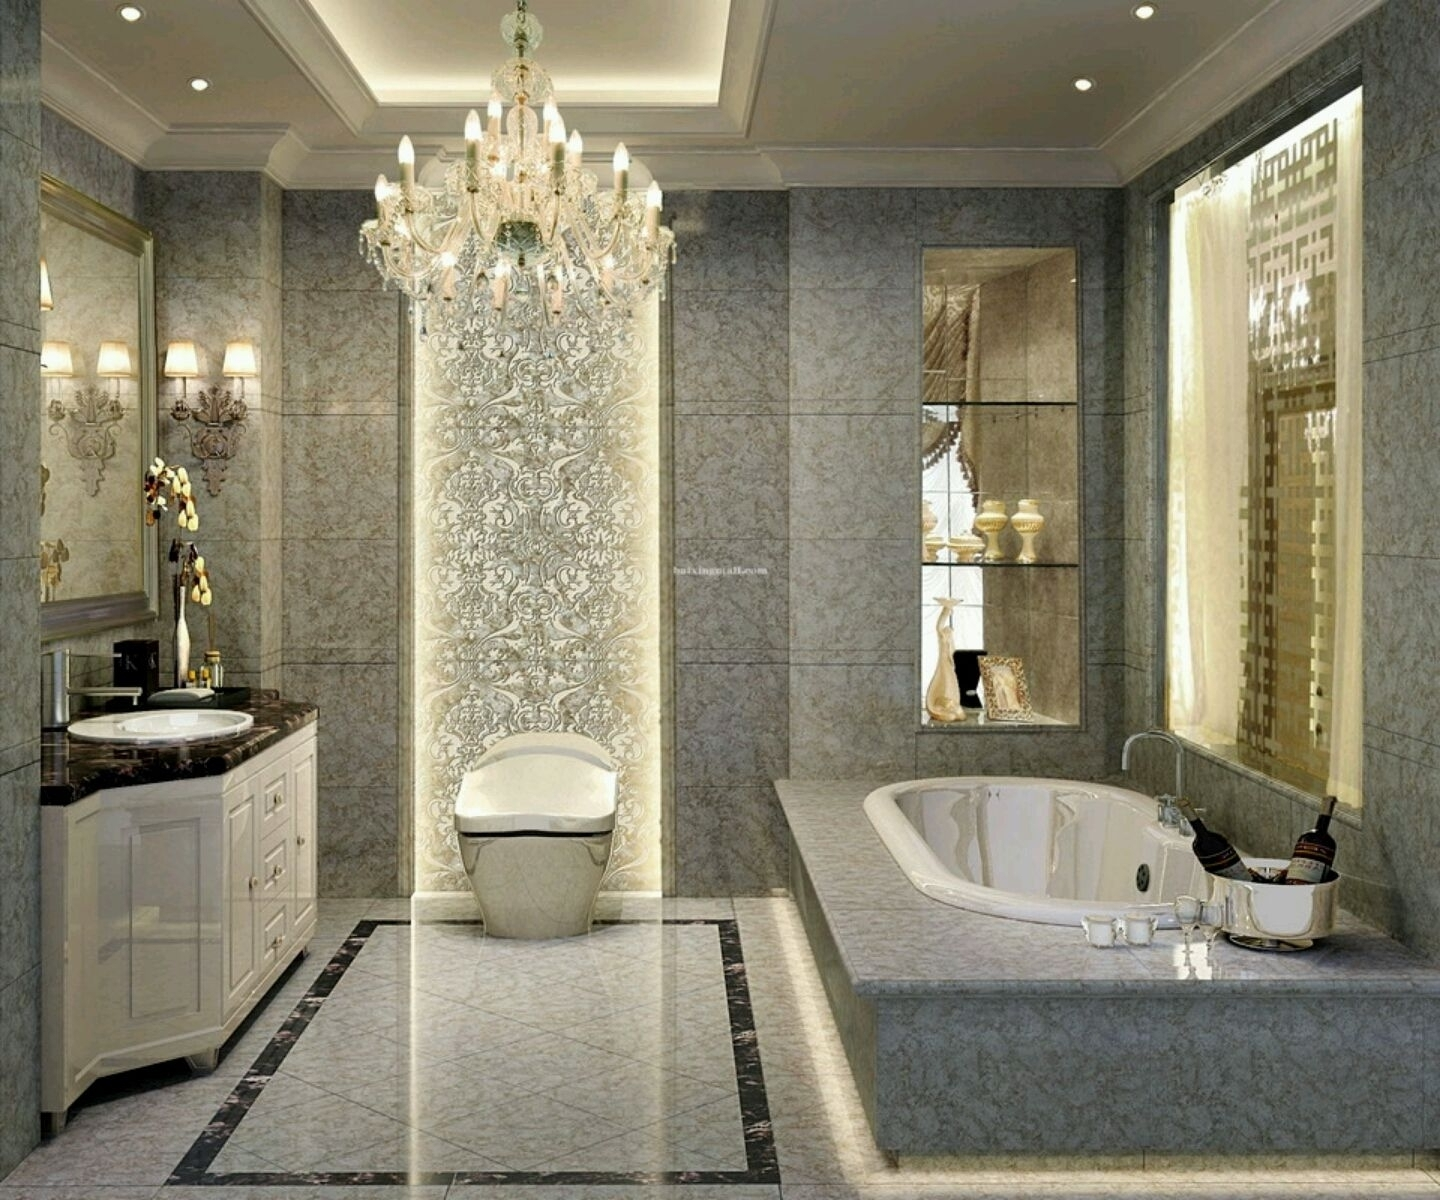 Decoration Ideas Gorgeous Luxury Home Interior With  Chandeliers Regarding Well Known Chandelier In The Bathroom (Gallery 11 of 20)